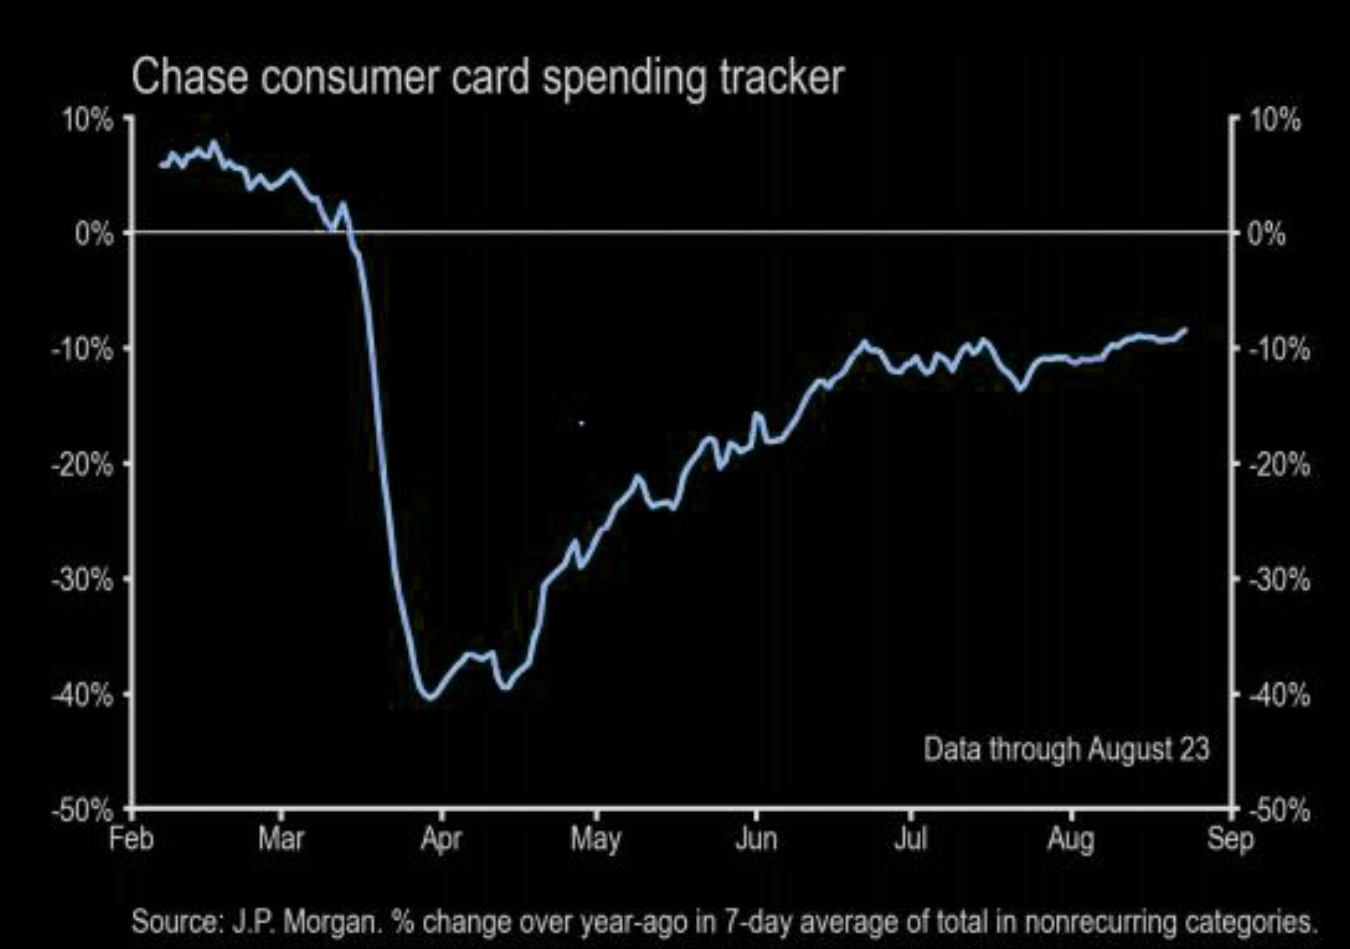 Chase consumer card spending: breaking out?